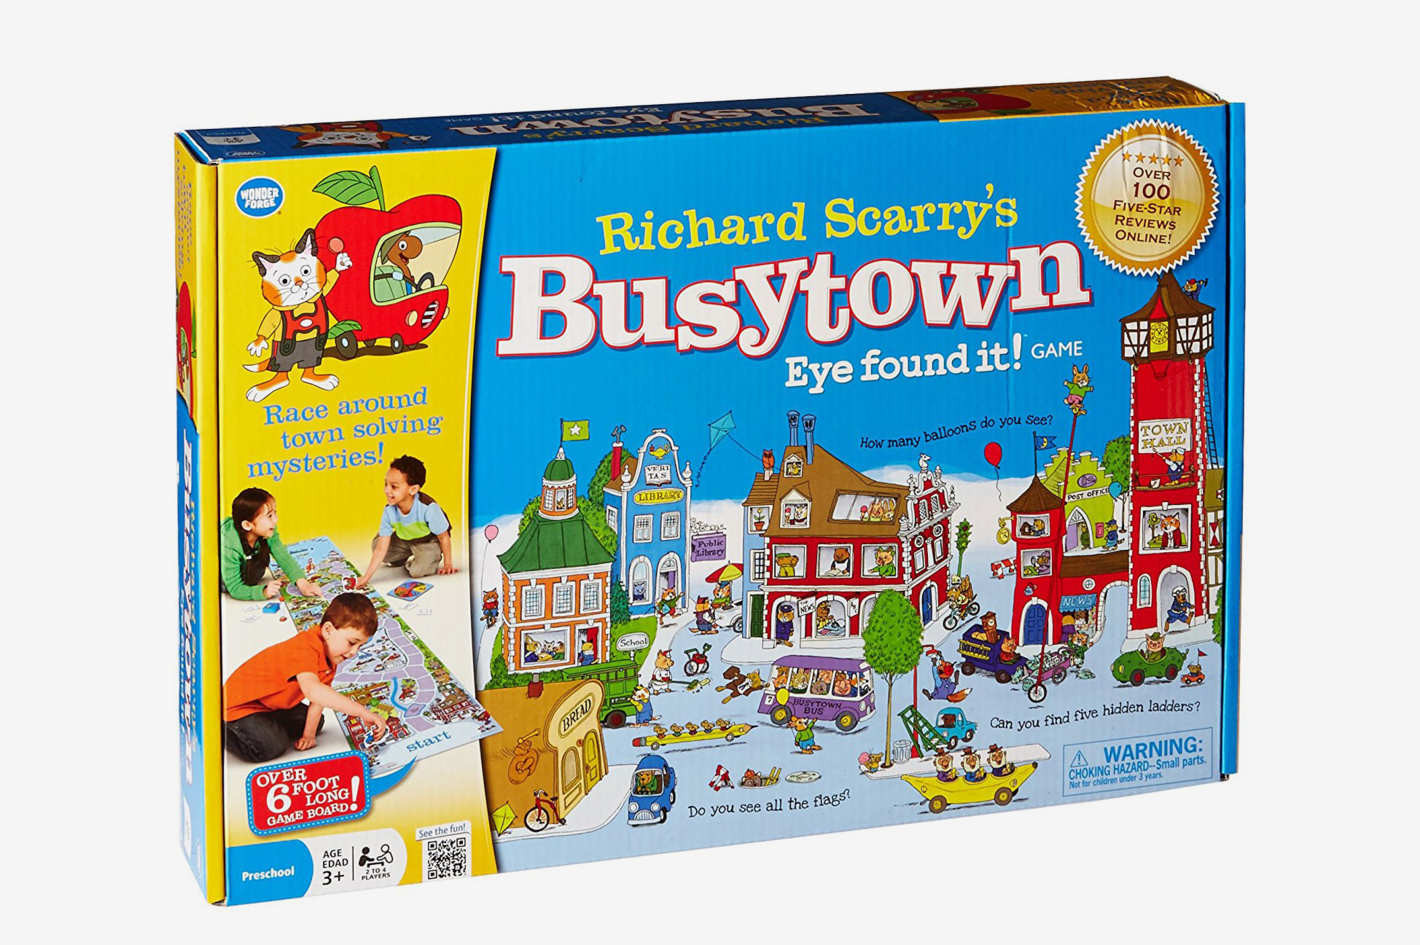 Popular Family Board Games Awesome 20 Best Family Board Games 2018 Of Gorgeous 42 Pictures Popular Family Board Games